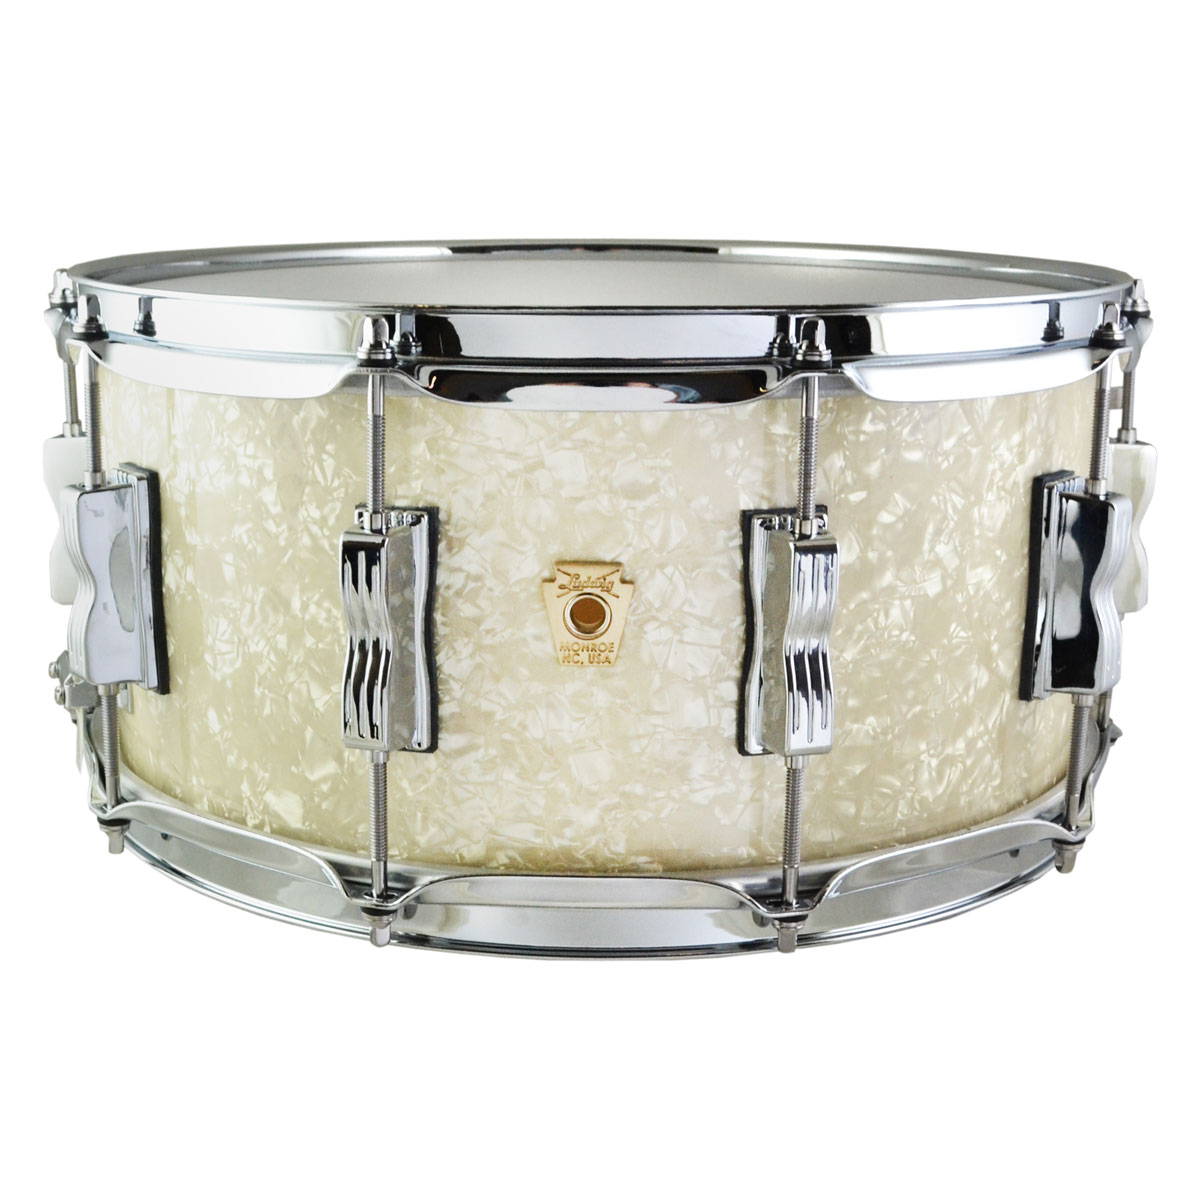 """Ludwig 6.5"""" x 14"""" Classic Maple Snare Drum with Streamline Lugs in Vintage White Marine"""